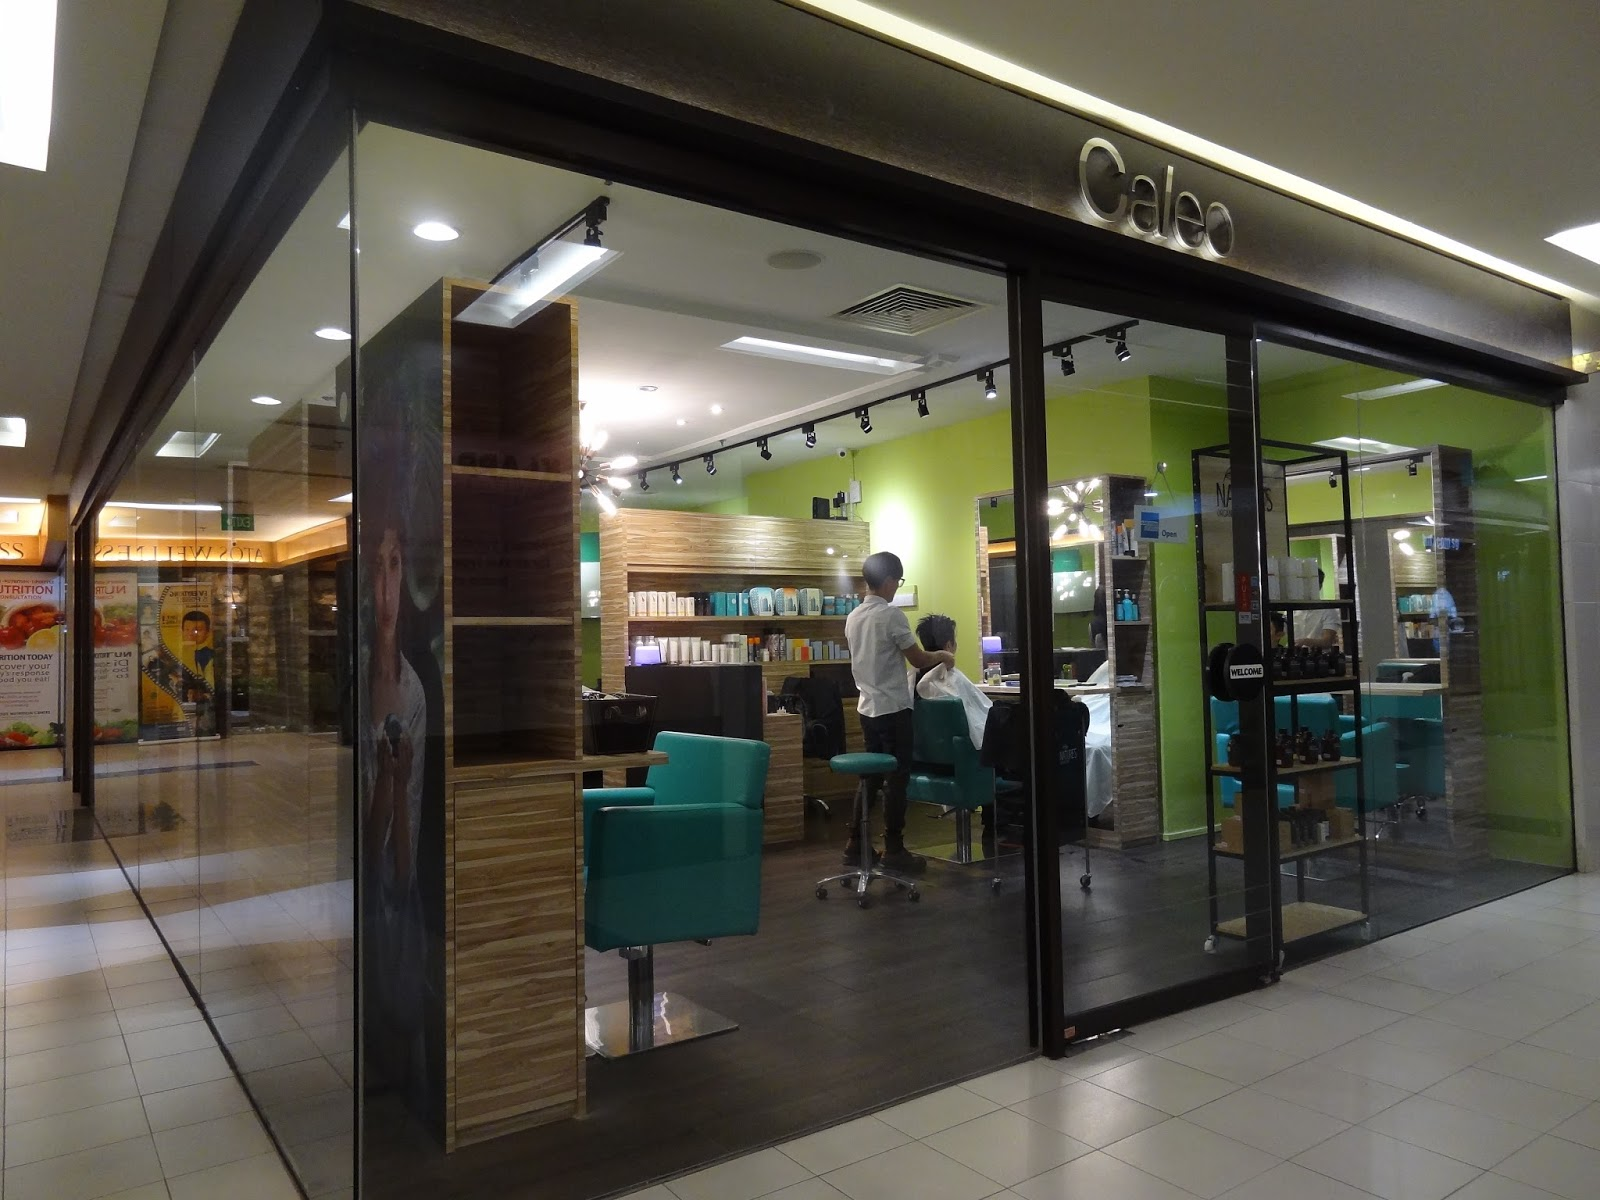 CALEO Hair Salon